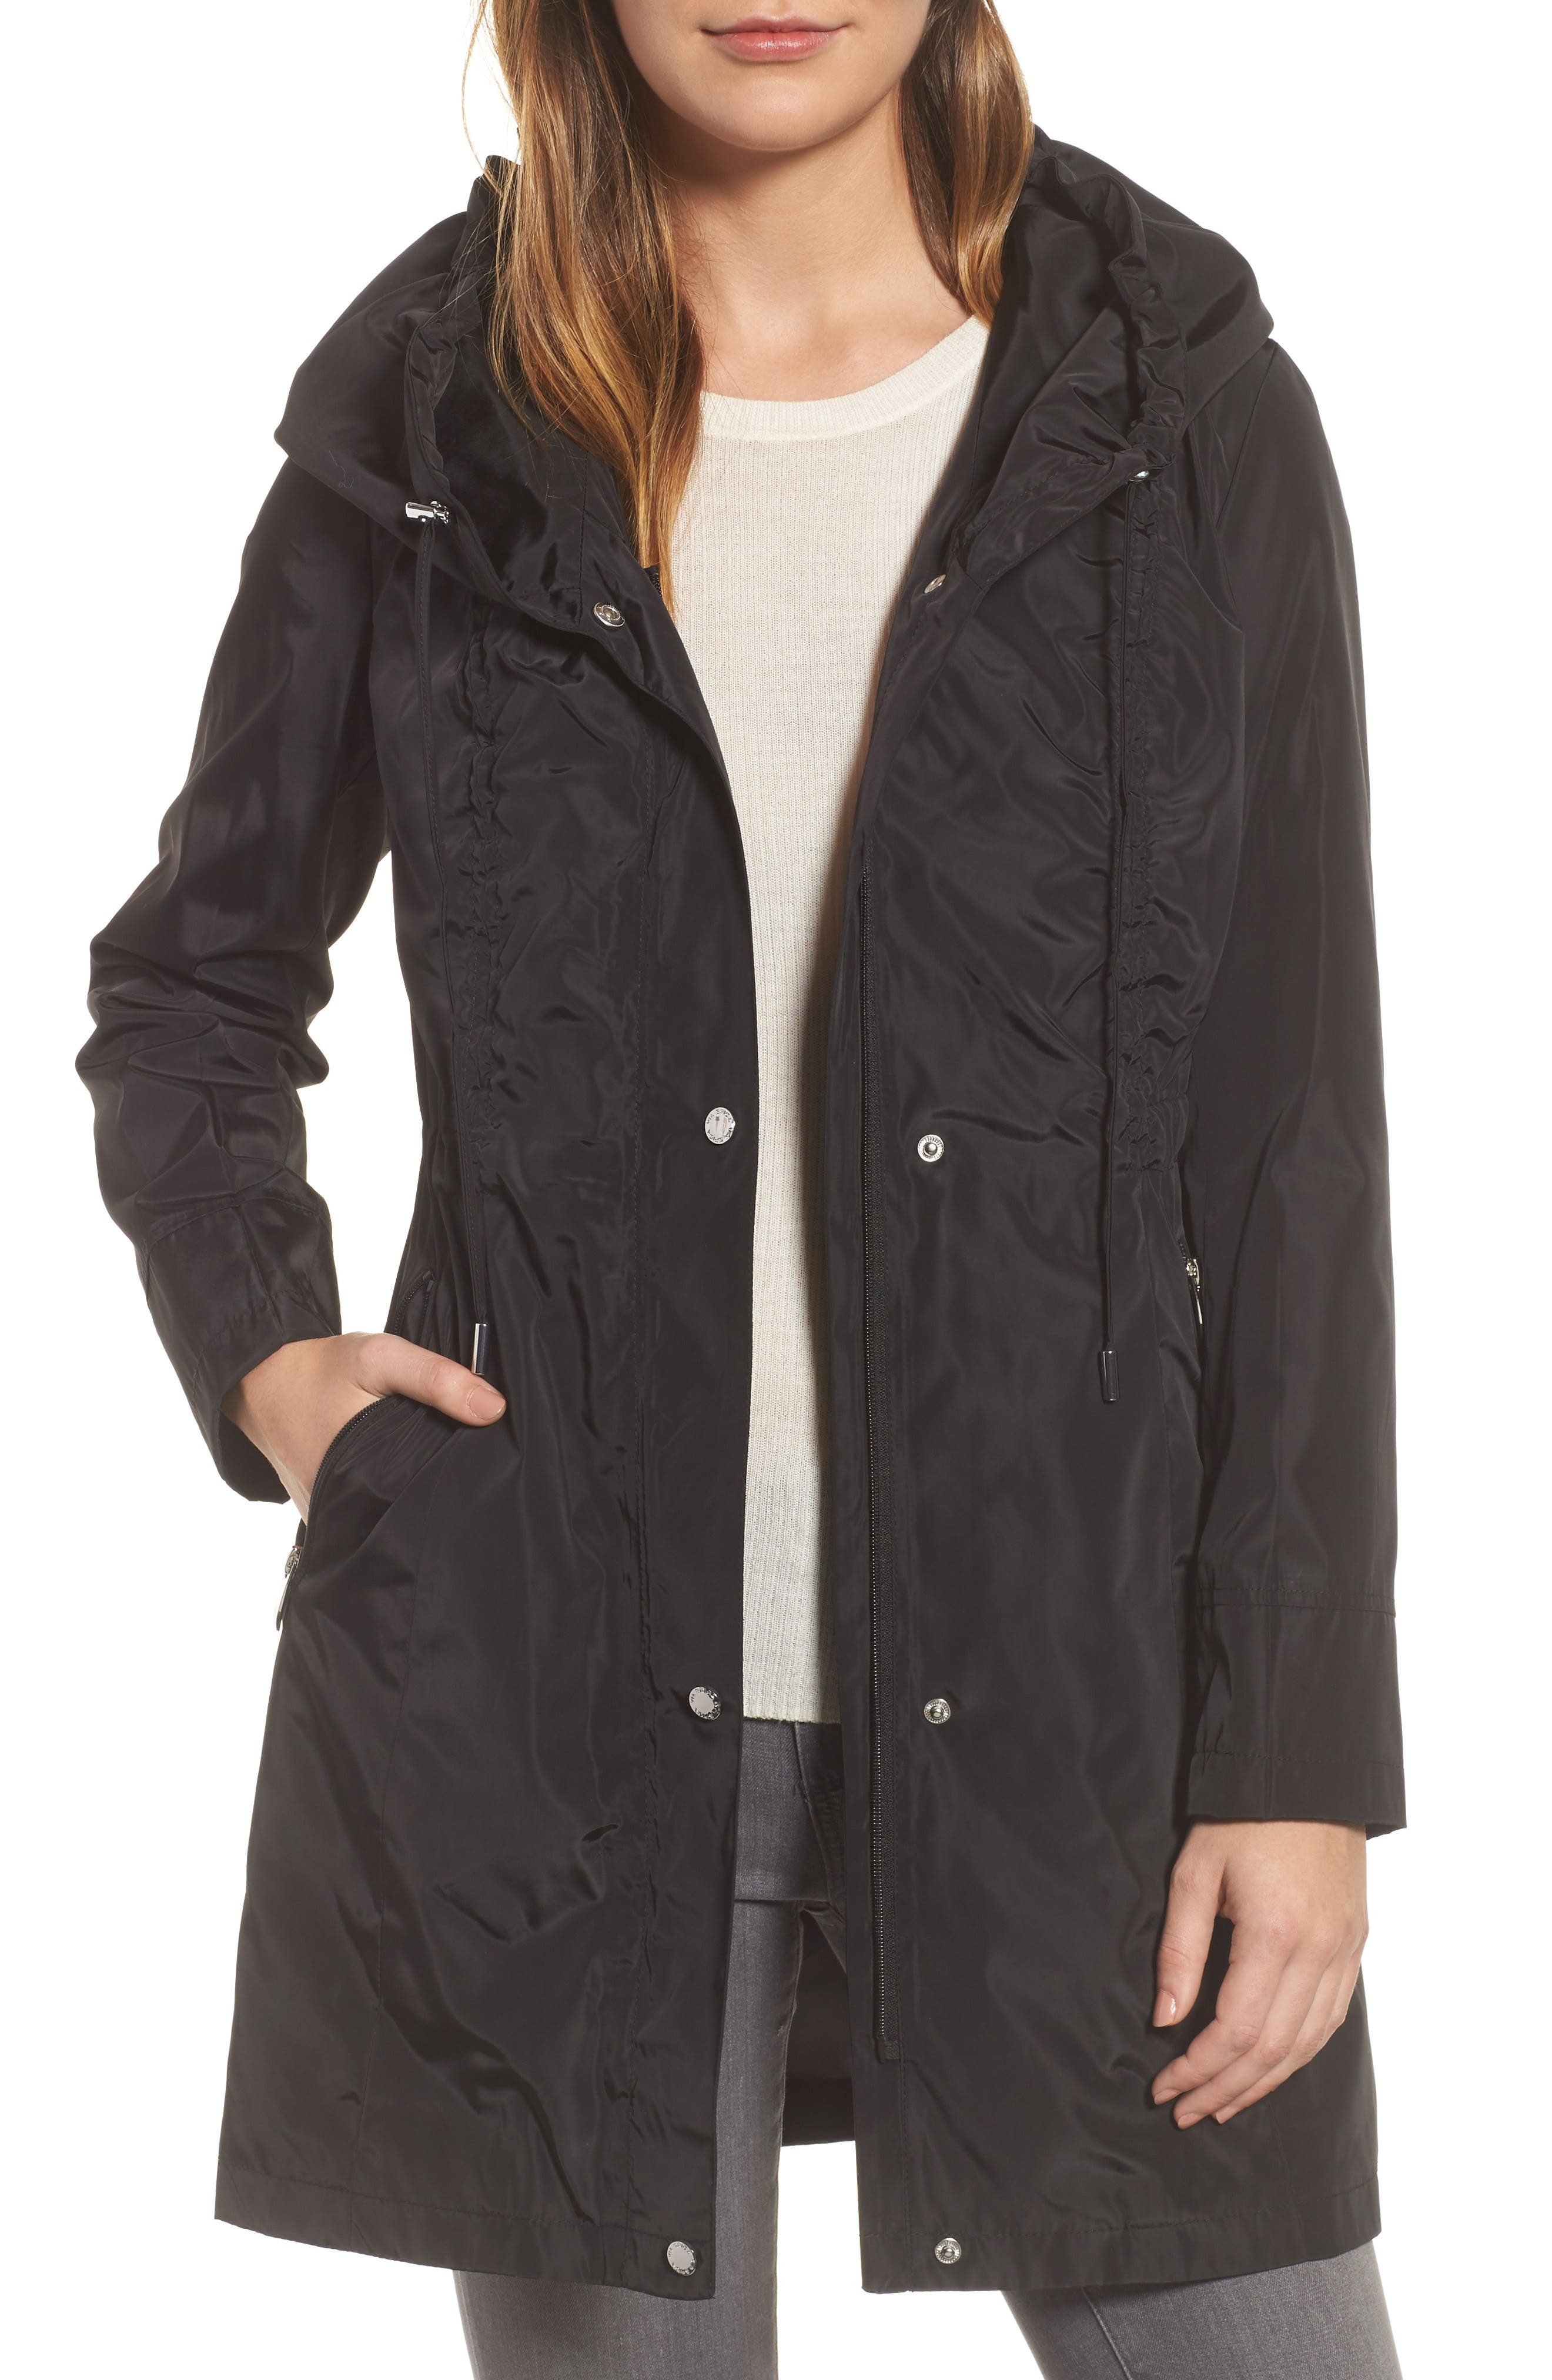 Via Spiga Packable Raincoat